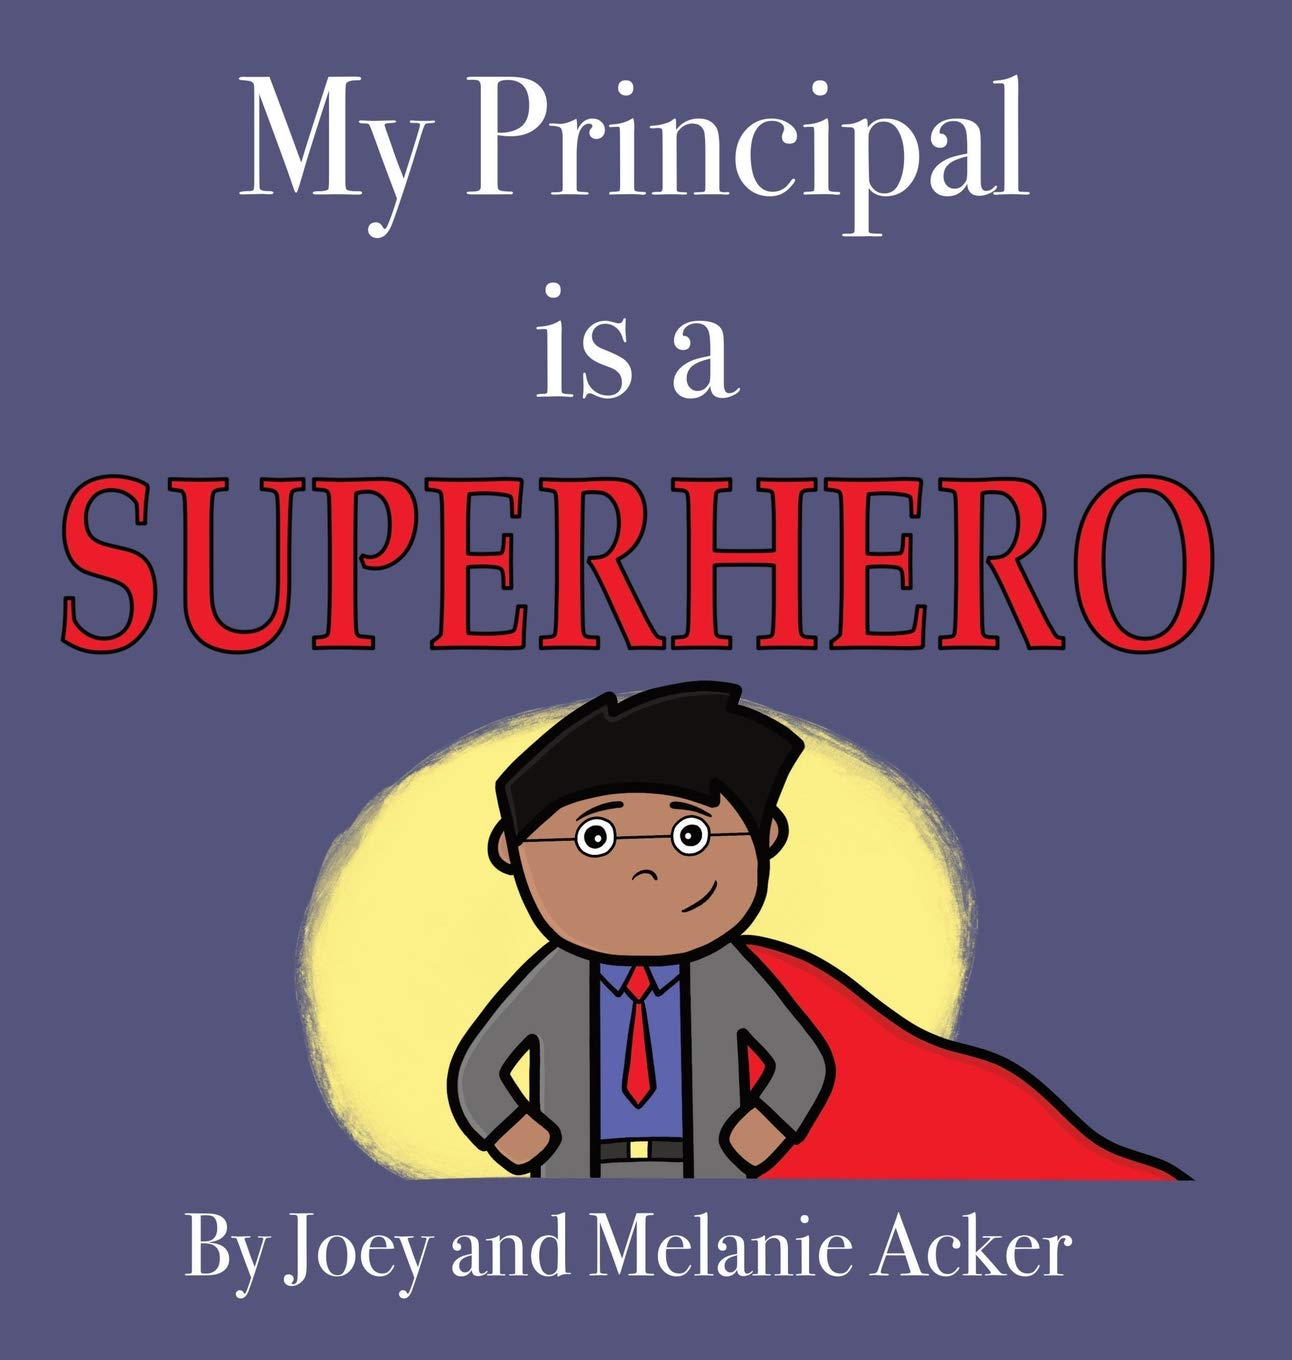 Amazon.com: My Principal is a Superhero (The Wonder Who Crew ...